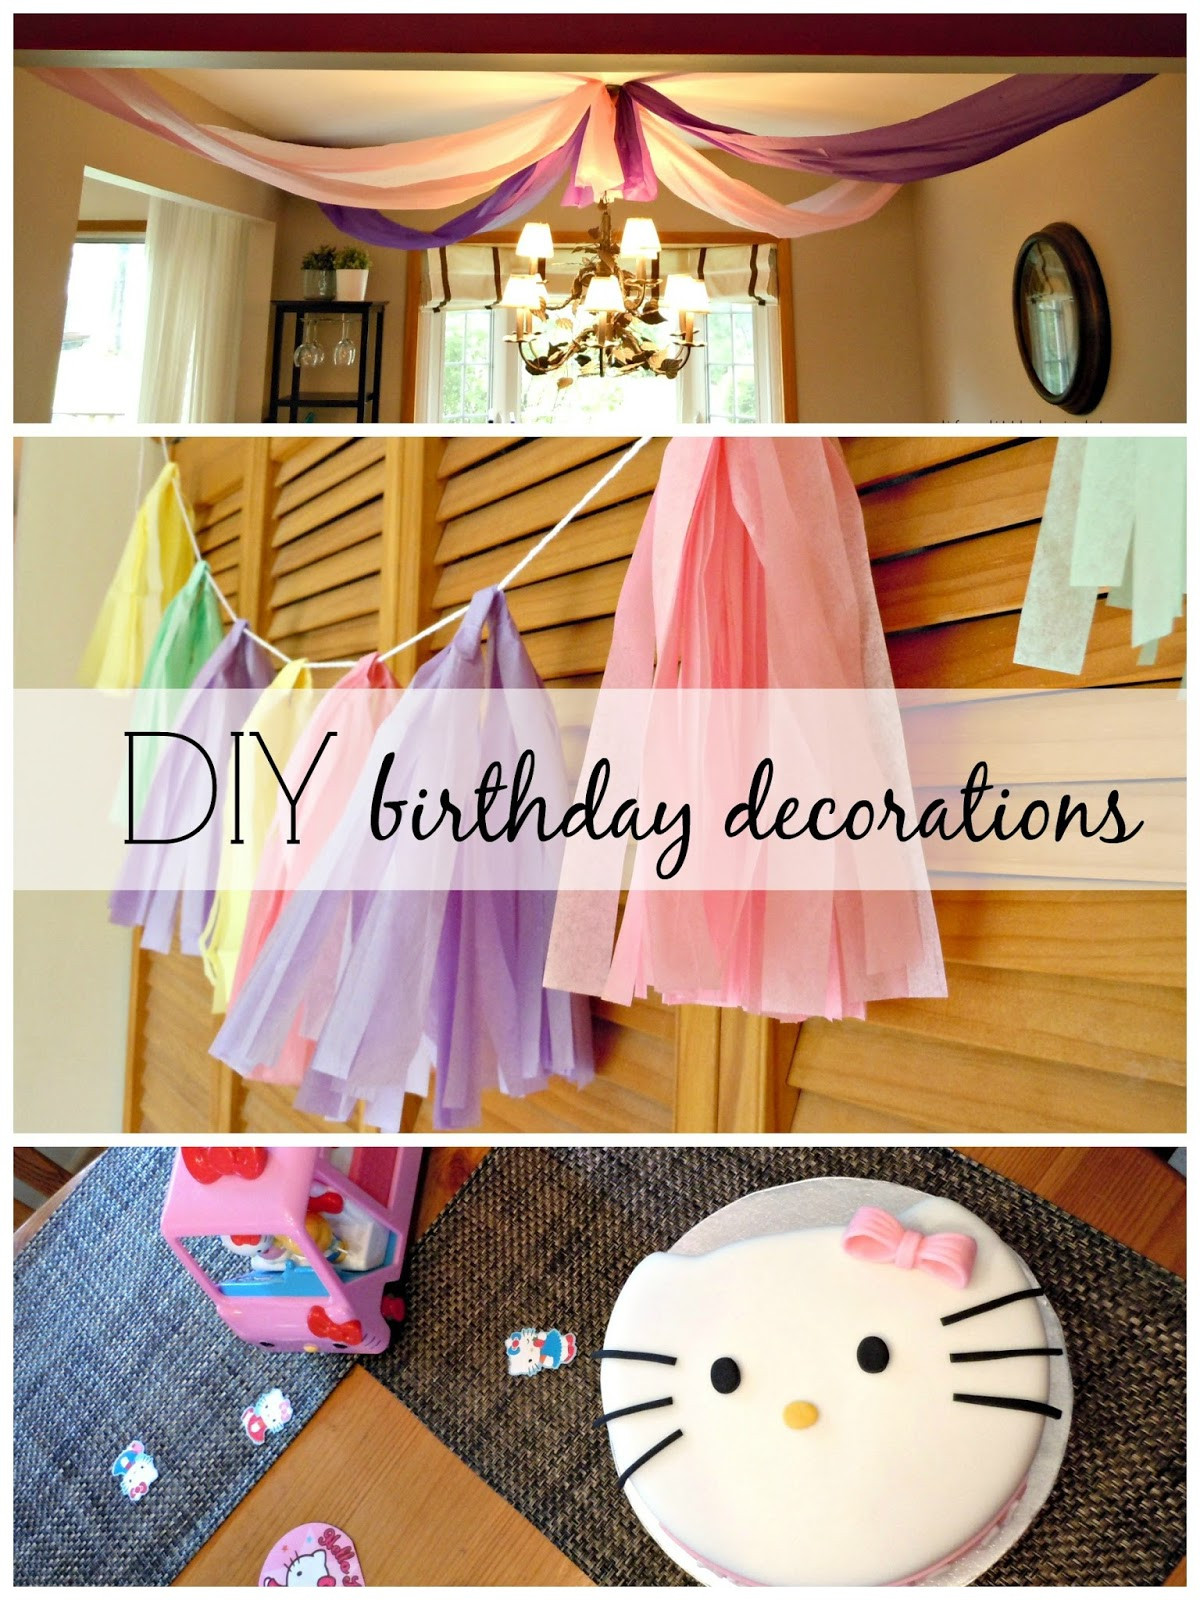 Best ideas about Diy Birthday Decor . Save or Pin Birthday Party DIY decorations Life a Little Brighter Now.